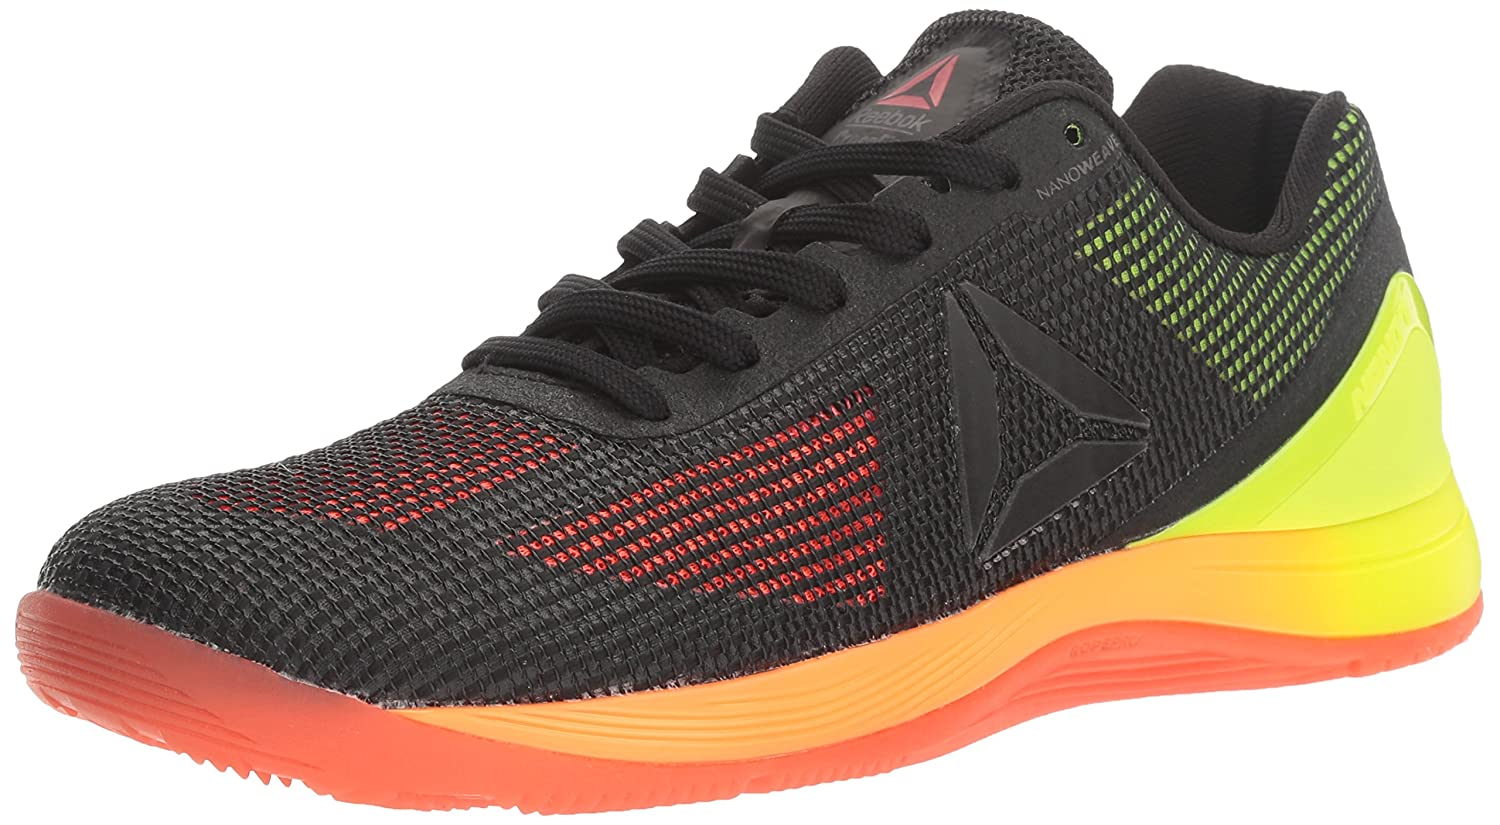 Reebok Women's Crossfit Nano 7.0 Track Shoe B01HH1ZARC 9 B(M) US|Vitamin C/Solar Yellow/Black/Lead